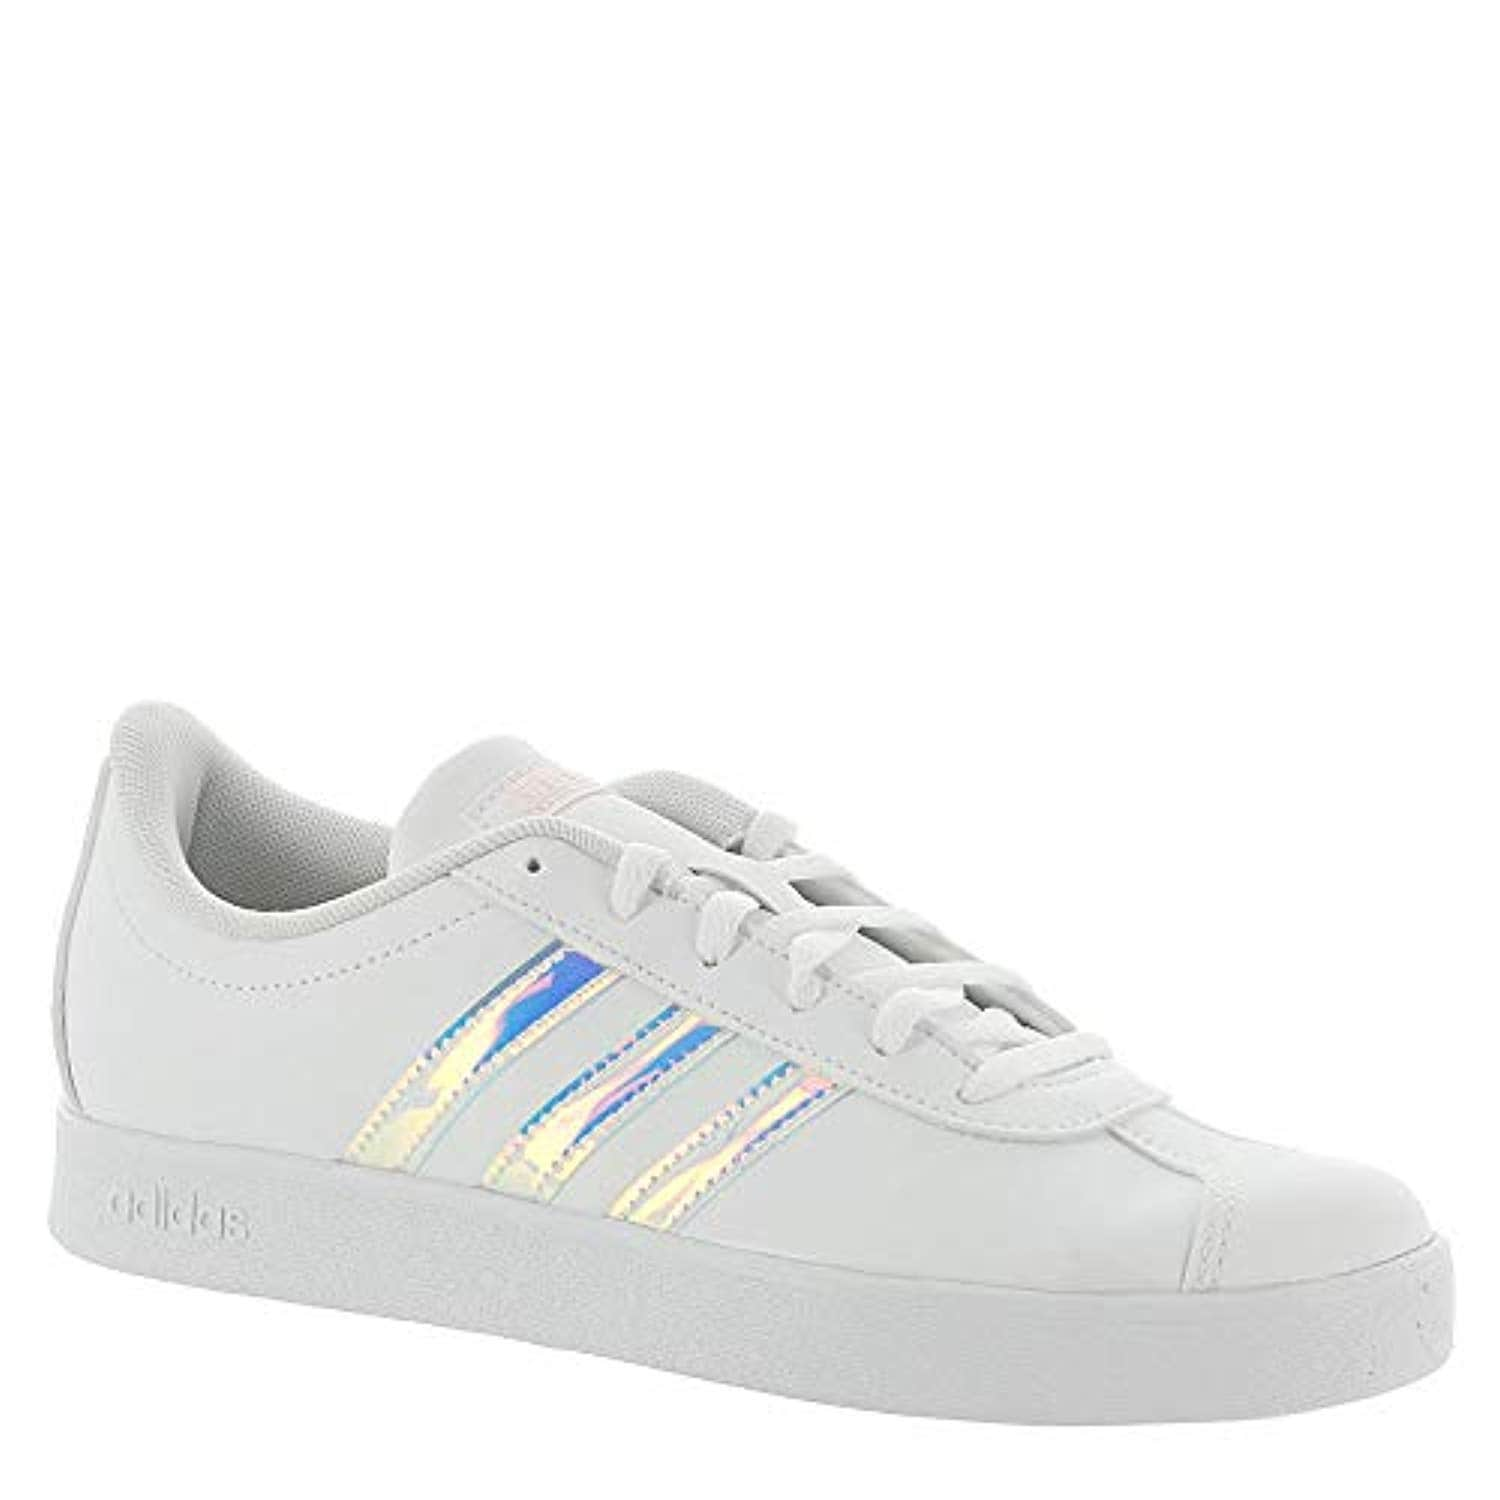 Buy Size 12 Adidas Men's Sneakers Online at Overstock   Our